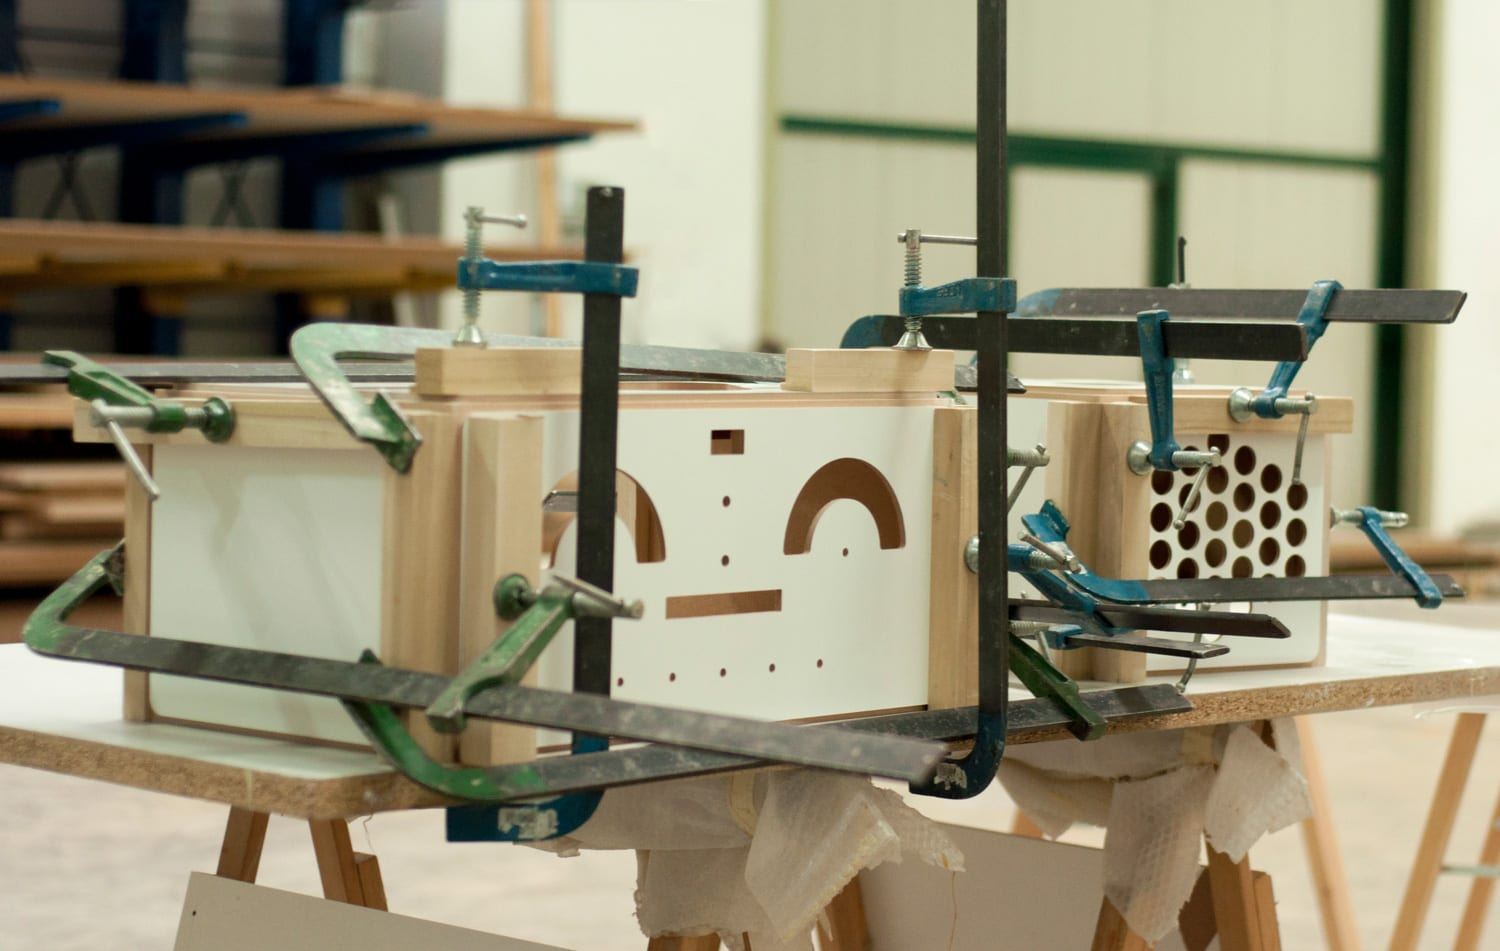 Making of Brionvega RR126 Radiofonografo designed by Achille Castiglioni | Yellowtrace